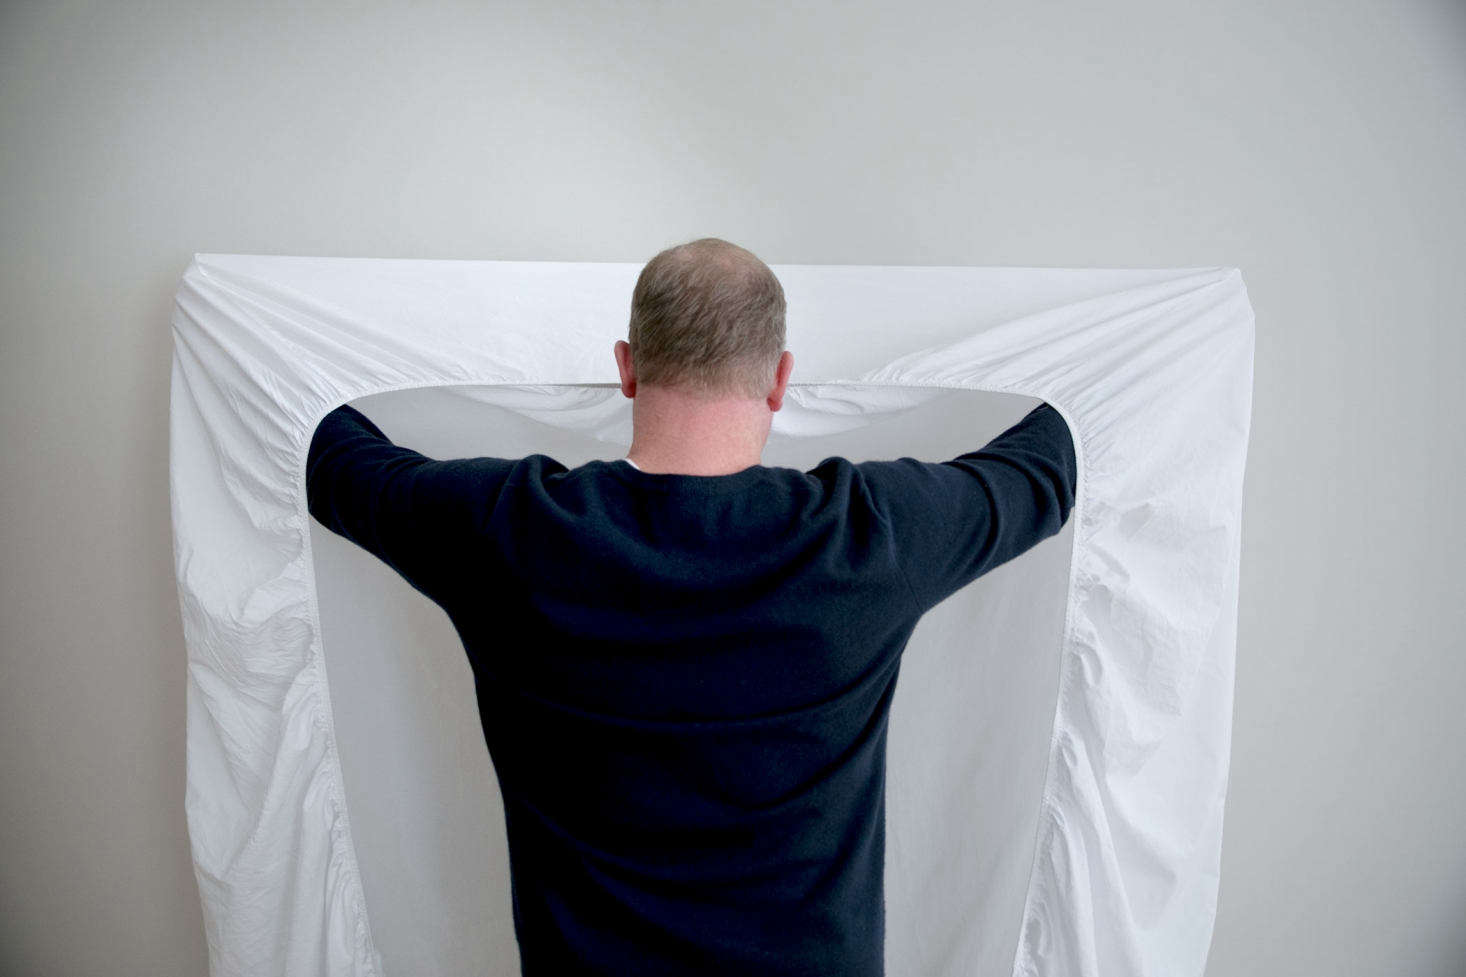 With the elastic side facing you, place your hands inside the top two corner pockets of the sheet.